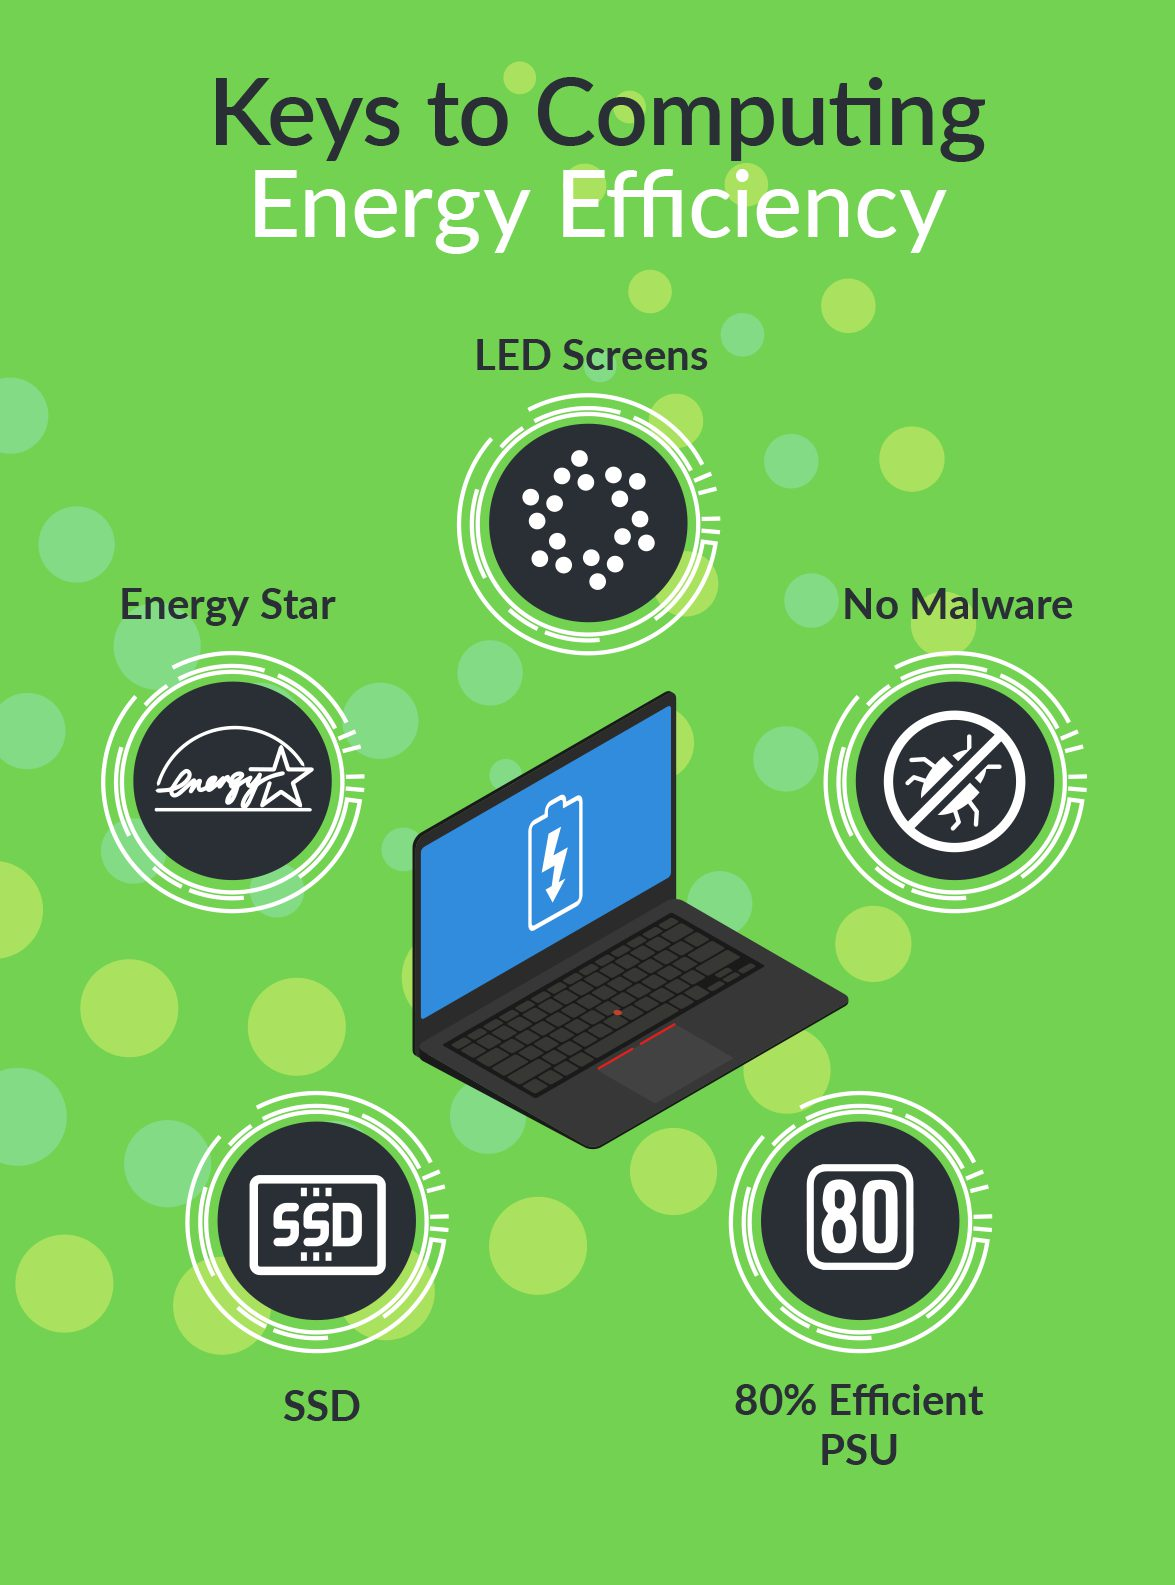 Optimizing Energy Efficiency in End-User Devices